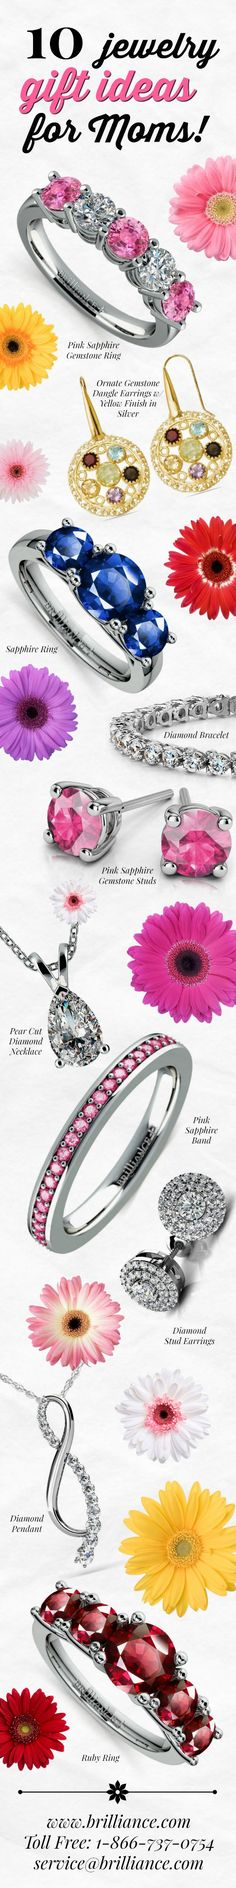 10 Jewelry Gift Ideas for Moms! #mothersday www.brilliance.com